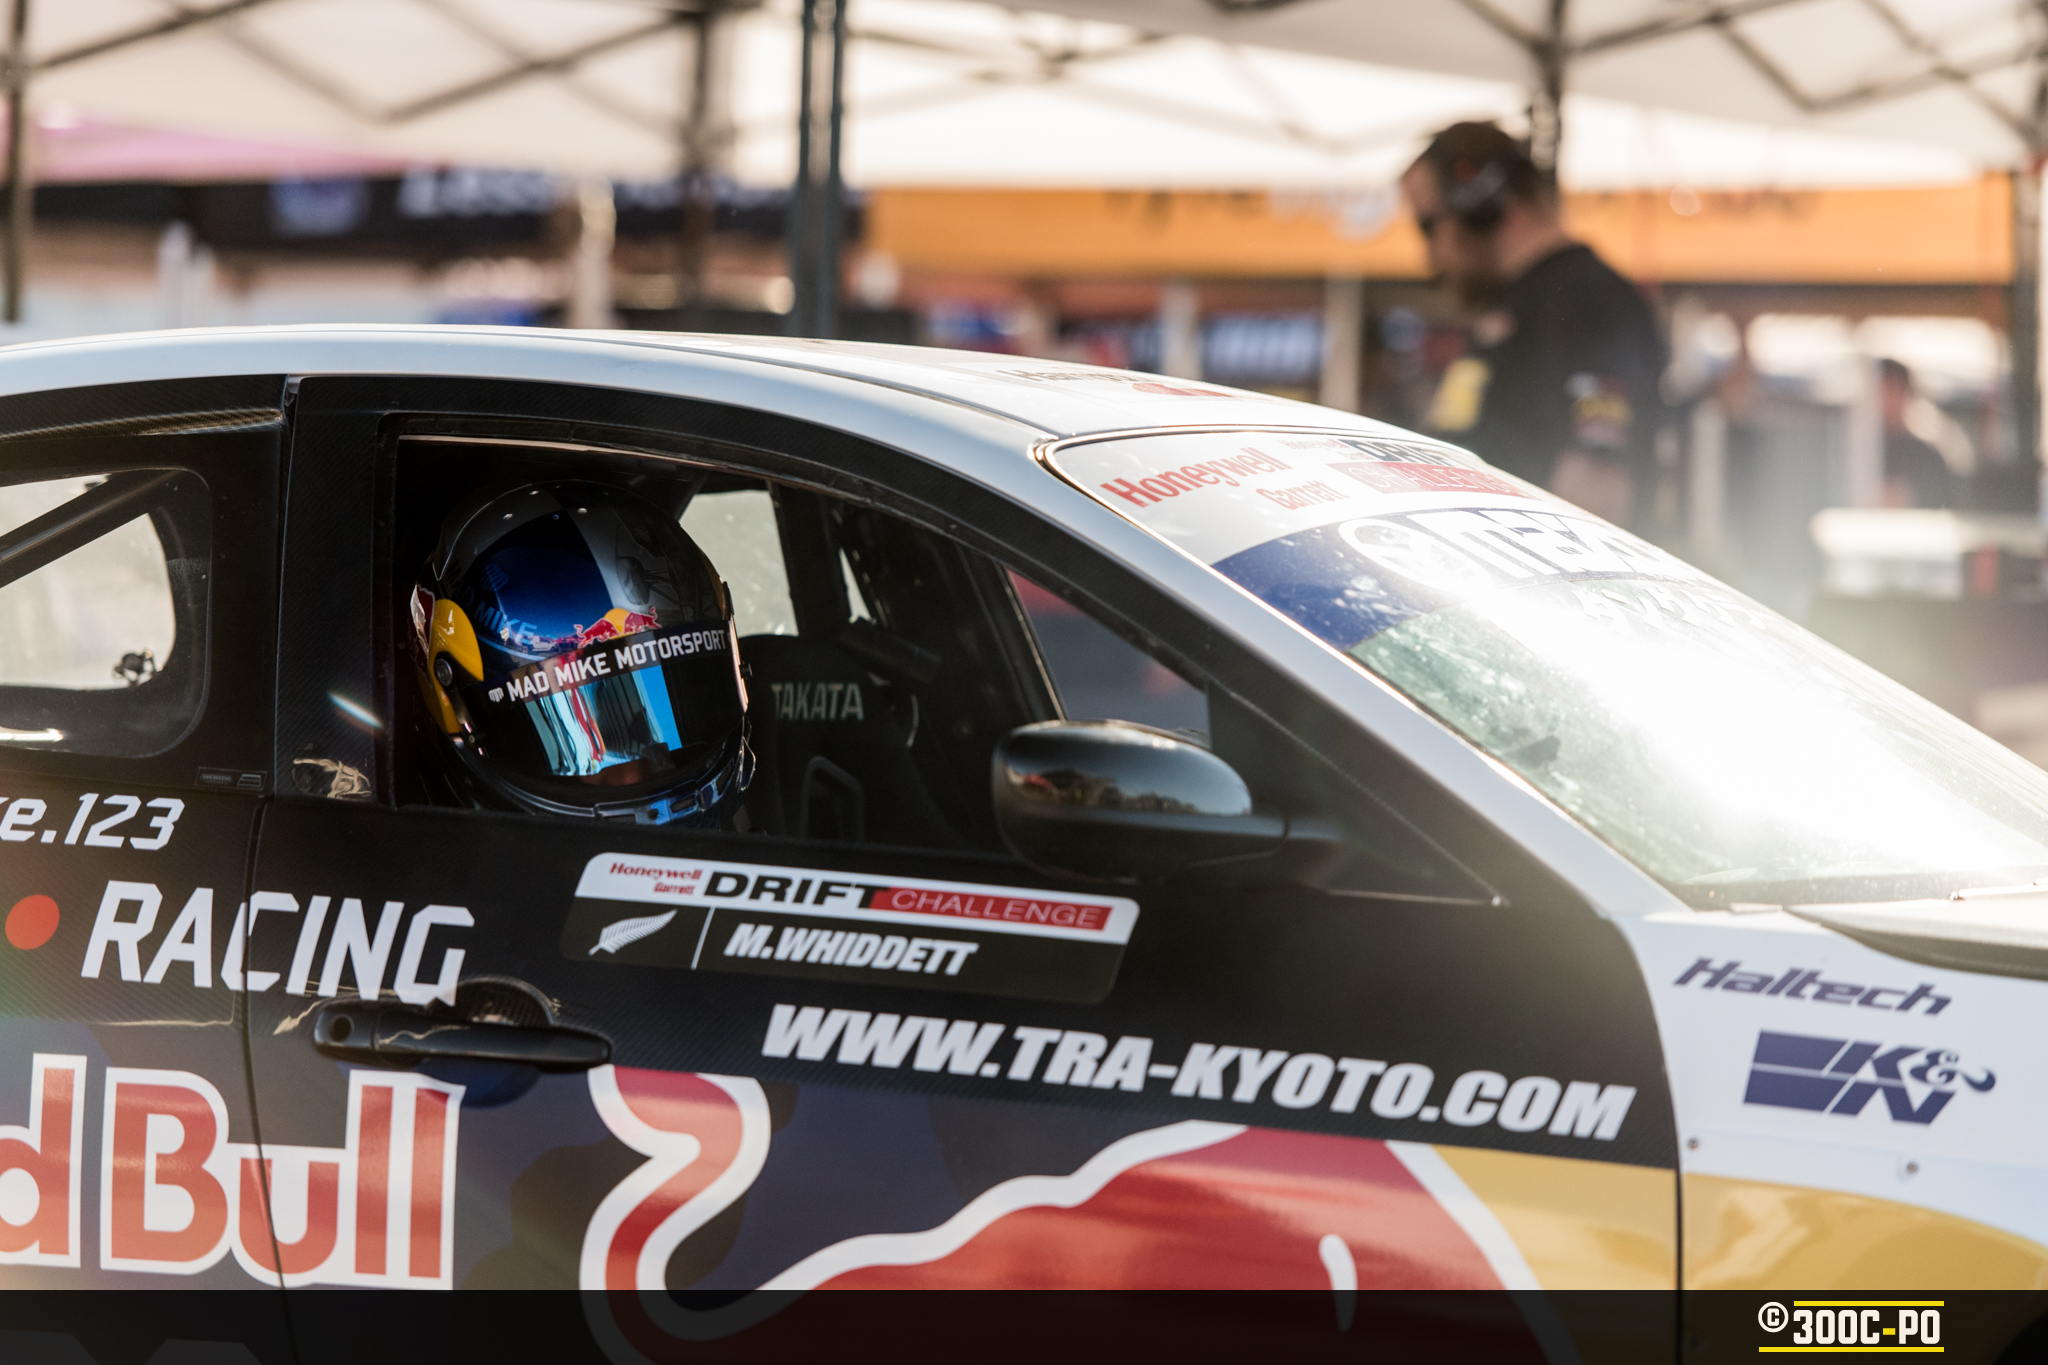 2017-10-12 - WTAC 2017 Test Day 071